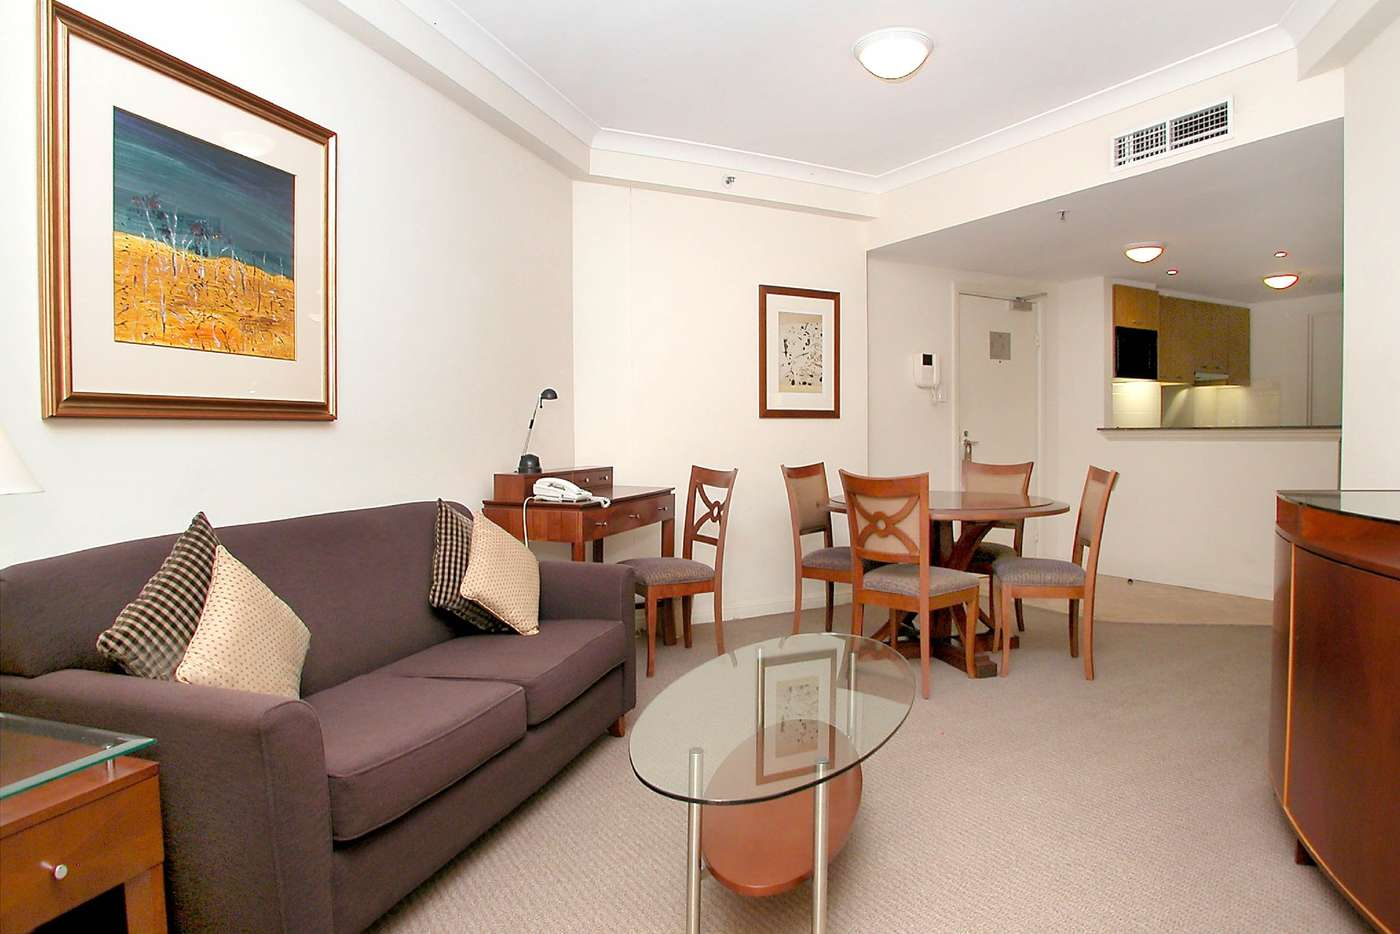 Main view of Homely apartment listing, 604/281 Elizabeth Street, Sydney NSW 2000